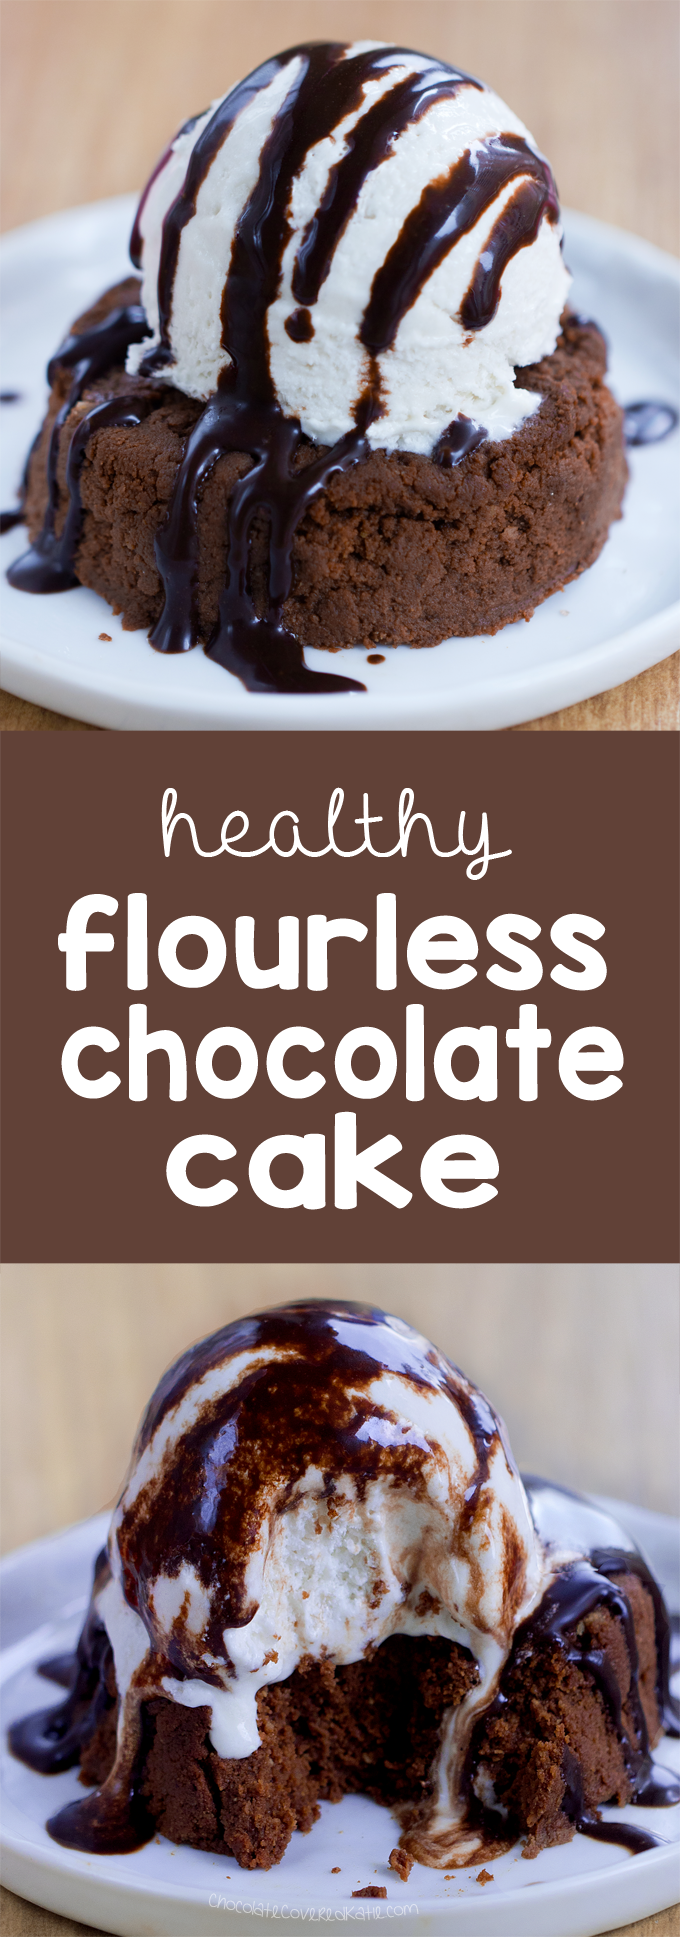 Flourless Chocolate Cake Made With Coconut Oil